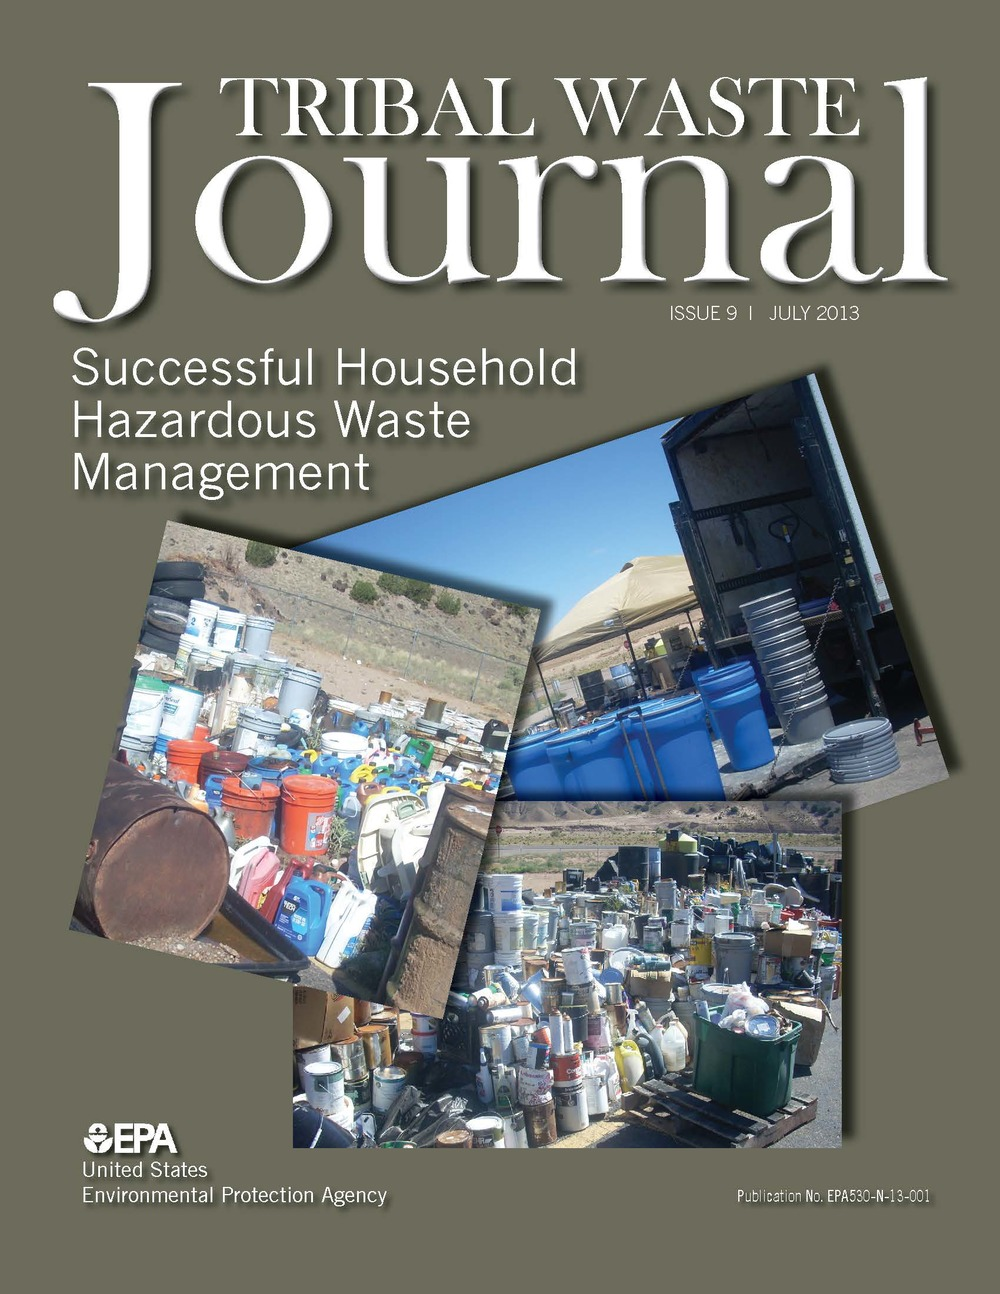 Tribal_Waste_Journal_COVER.jpg